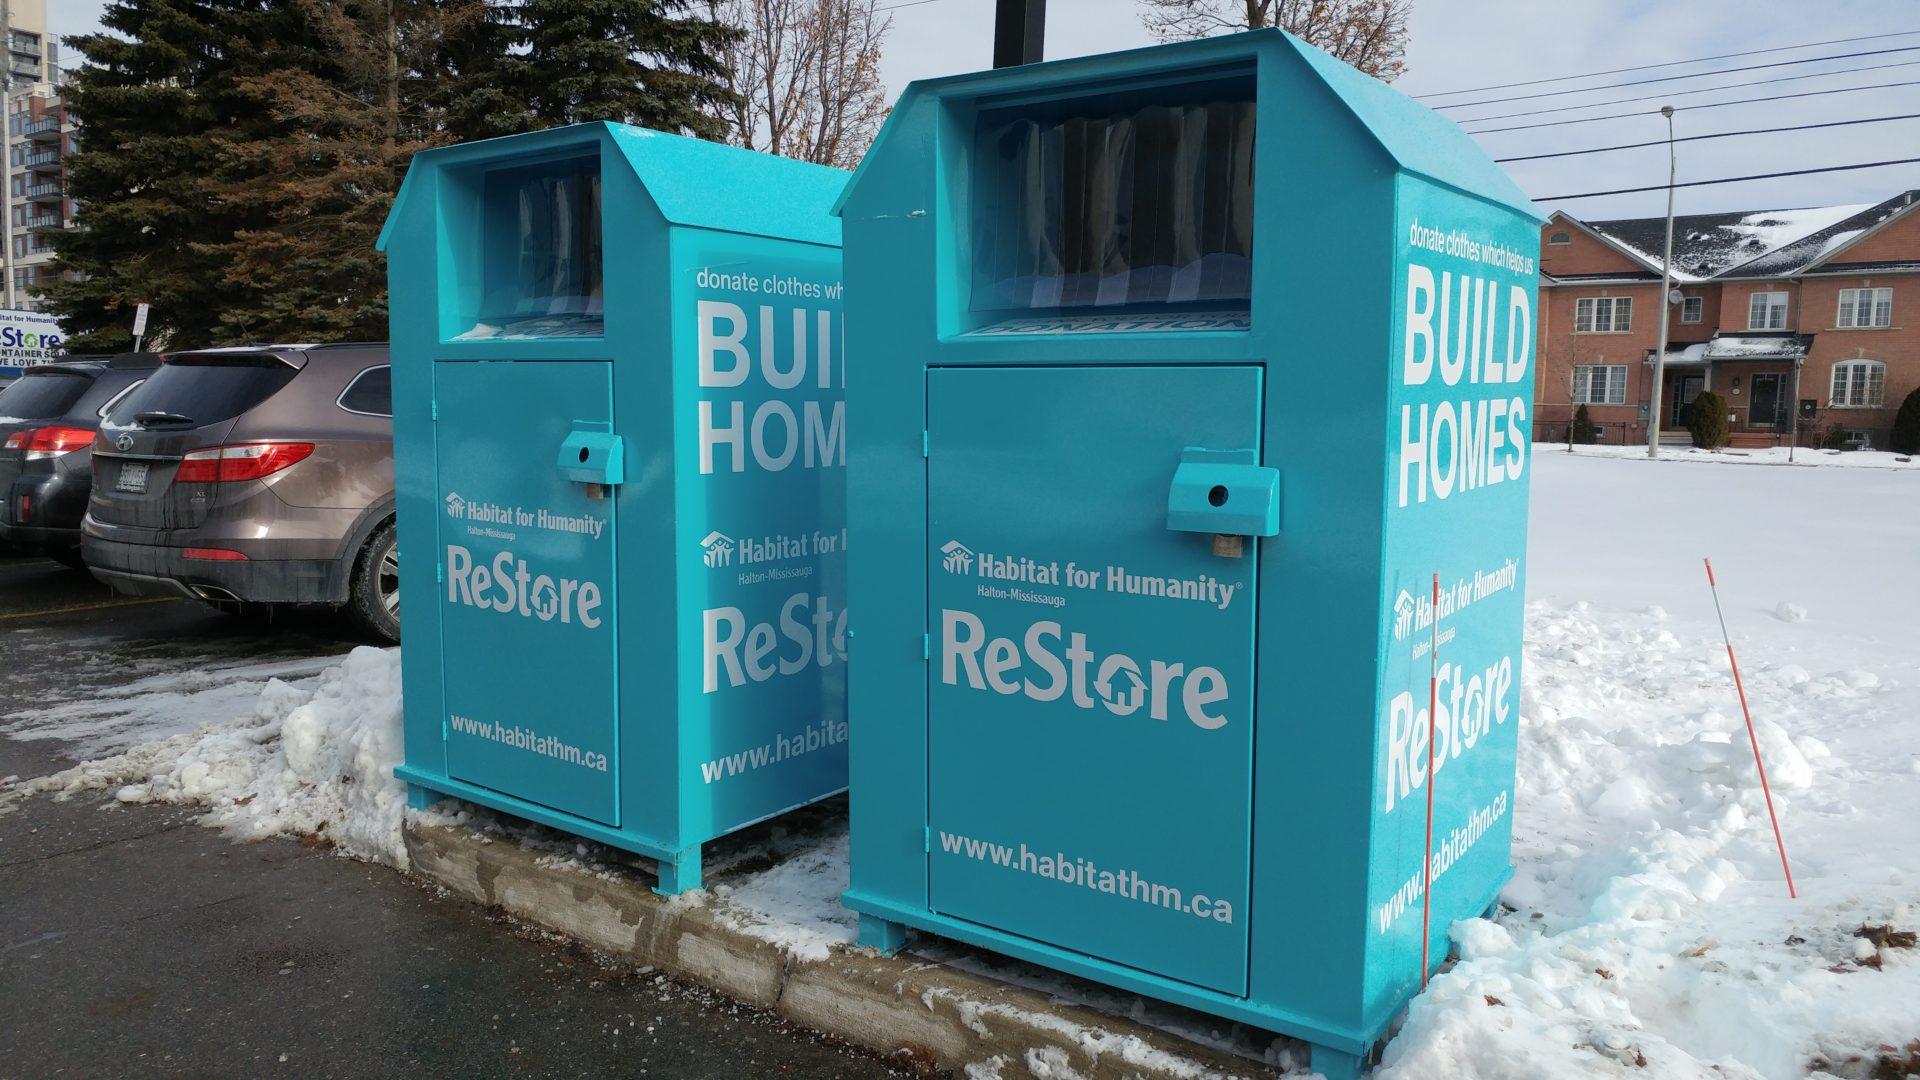 Habitat's bright blue donation bins in our Burlington ReStore parking lot.